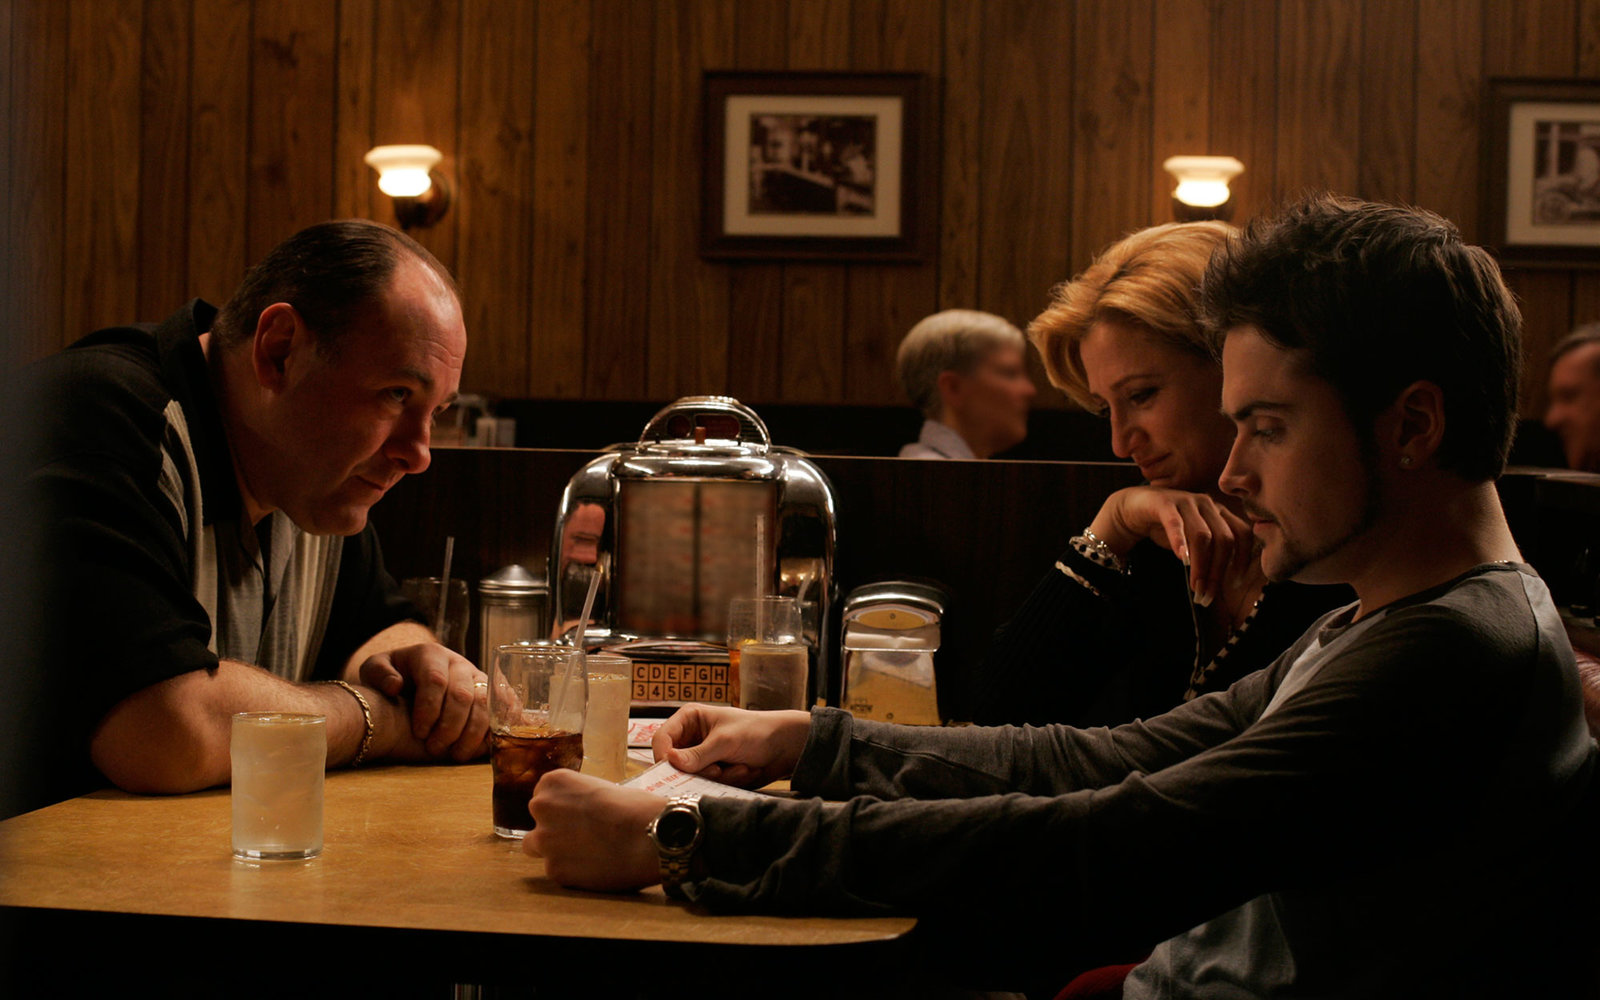 TV Show Locations The Sopranos HBO Holstens Ice Cream Parlor